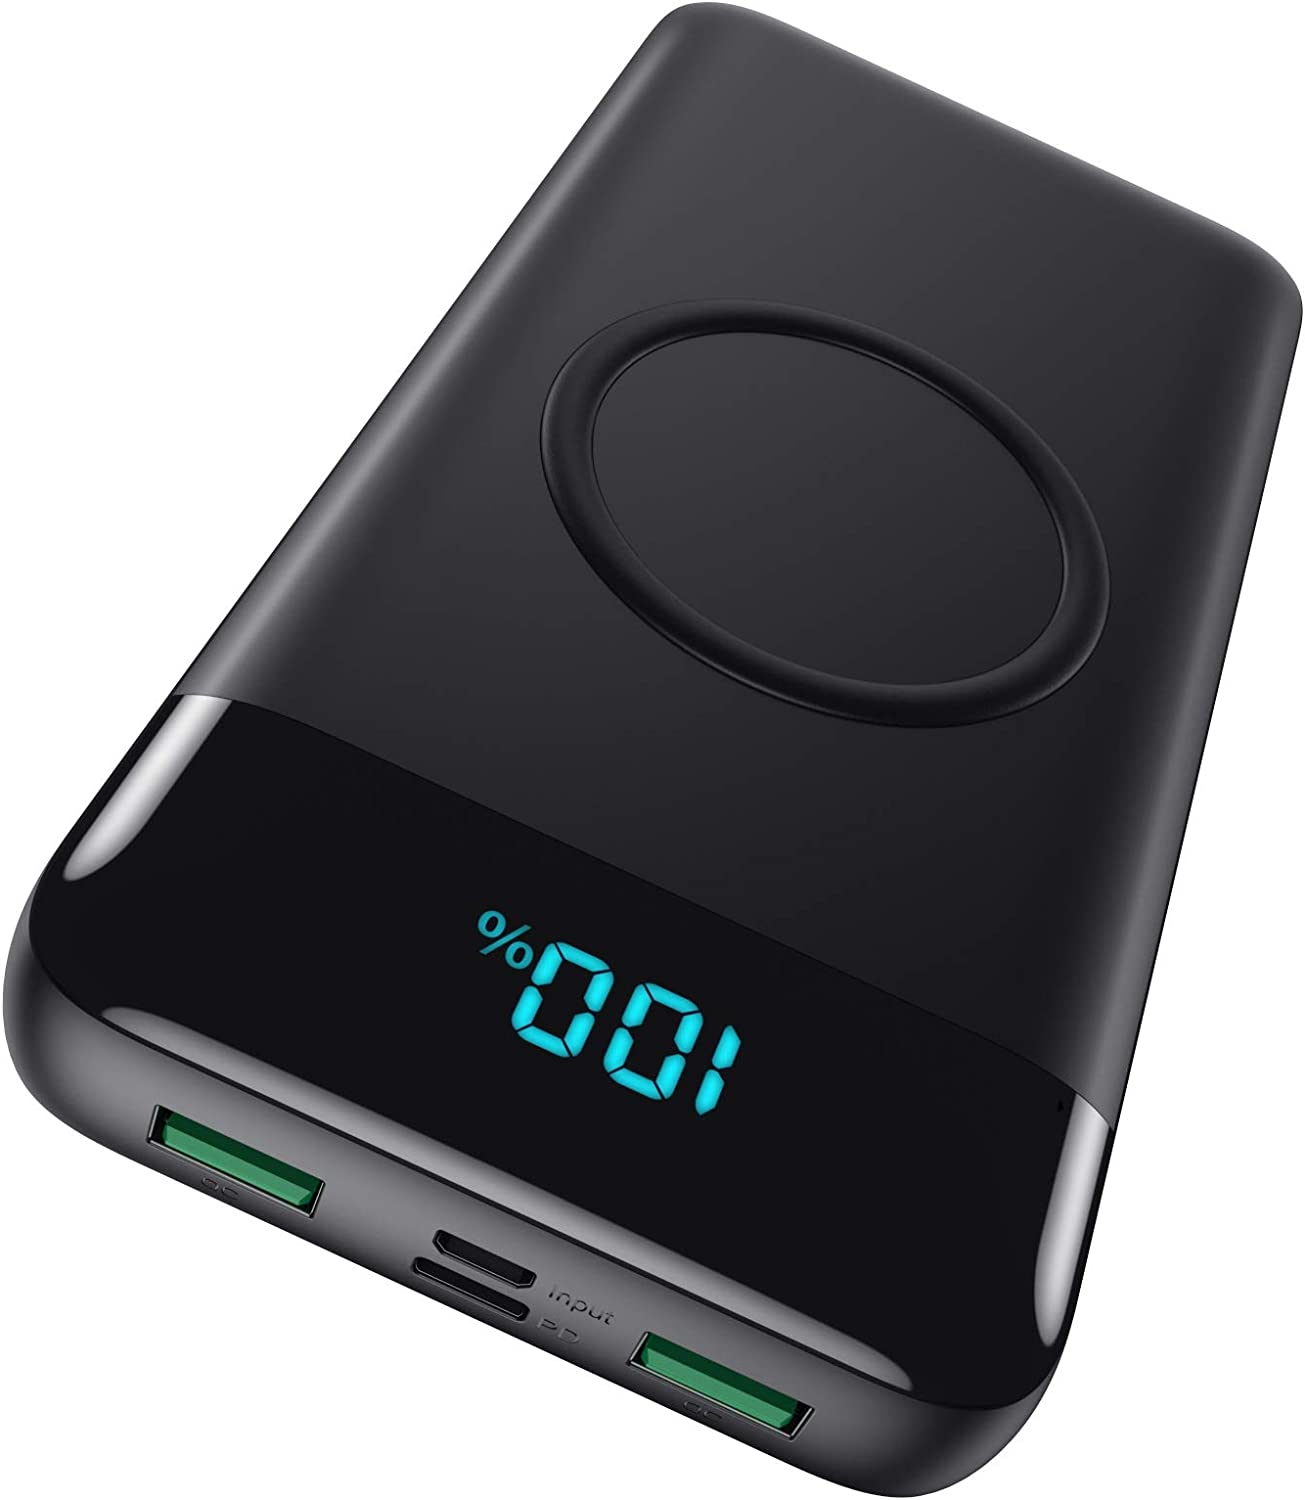 Wireless Portable Charger 30,800mAh 15W Wireless Charging 25W PD QC4.0 Fast Charging Smart LED Display USB-C Power Bank, 4 Output & 2 Input External Battery Pack Compatible with iPhone, Samsung, iPad